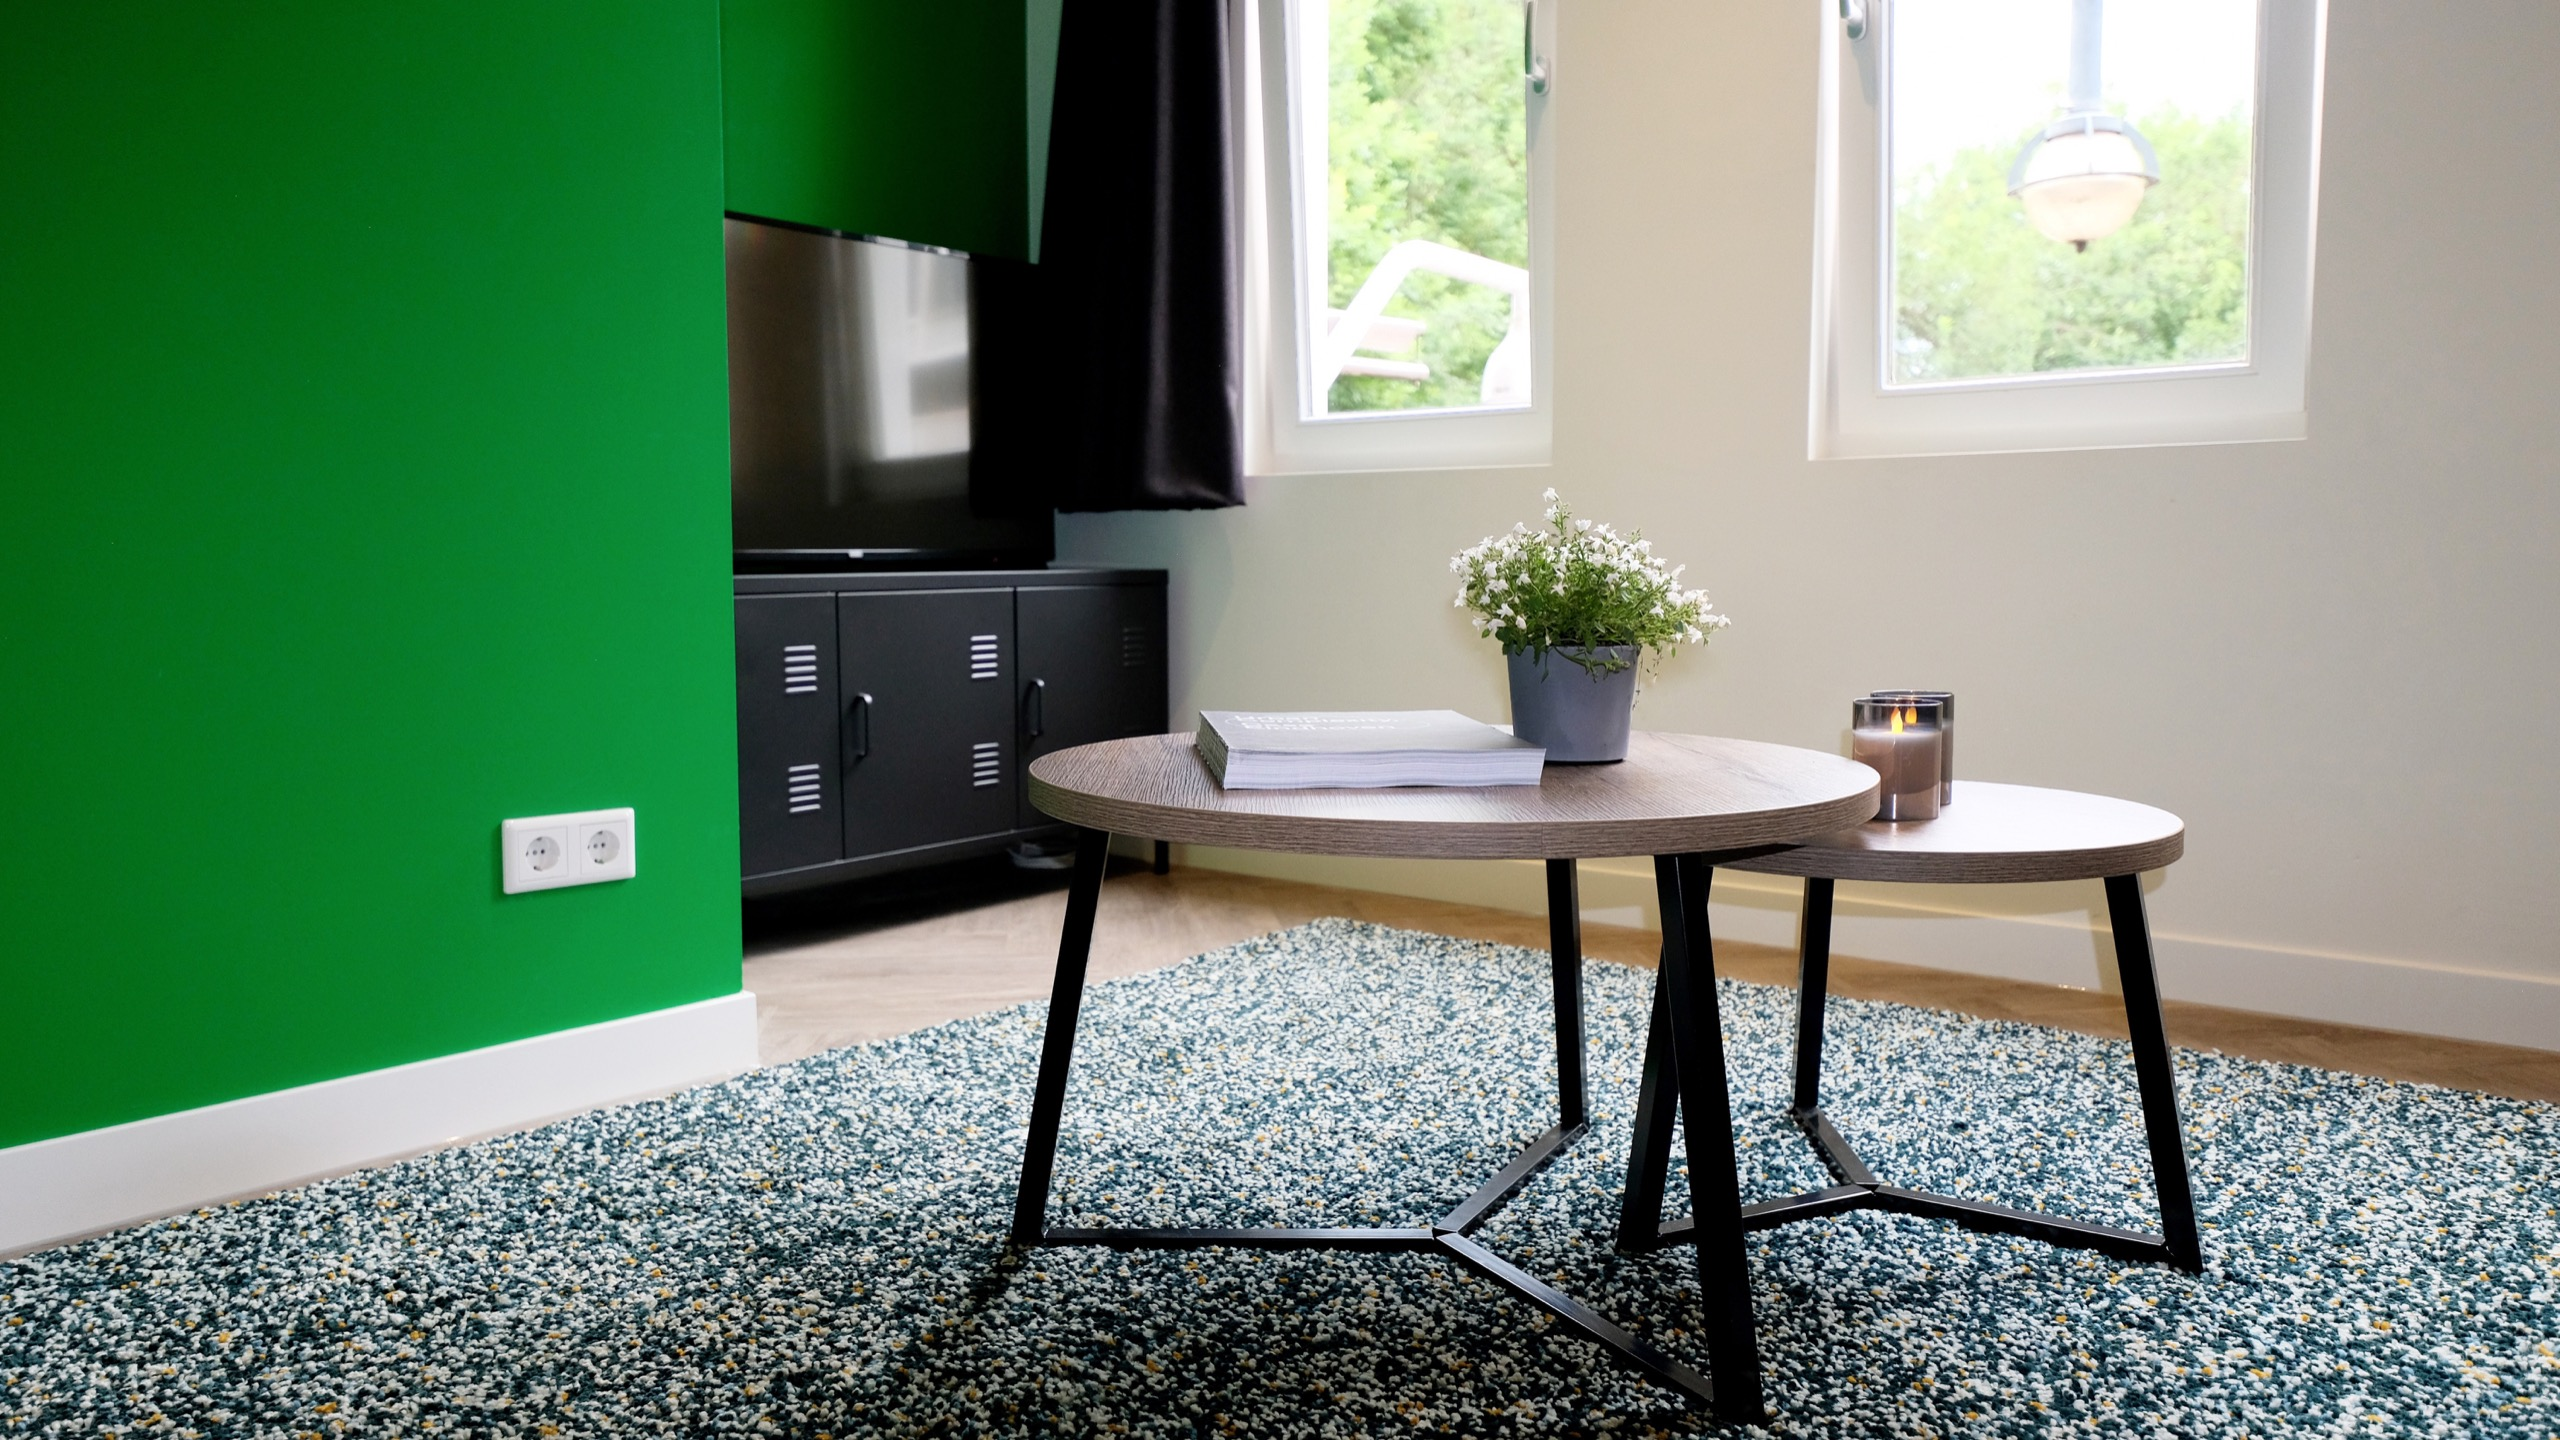 Green Stay Serviced Apartments Apartment A foto 02